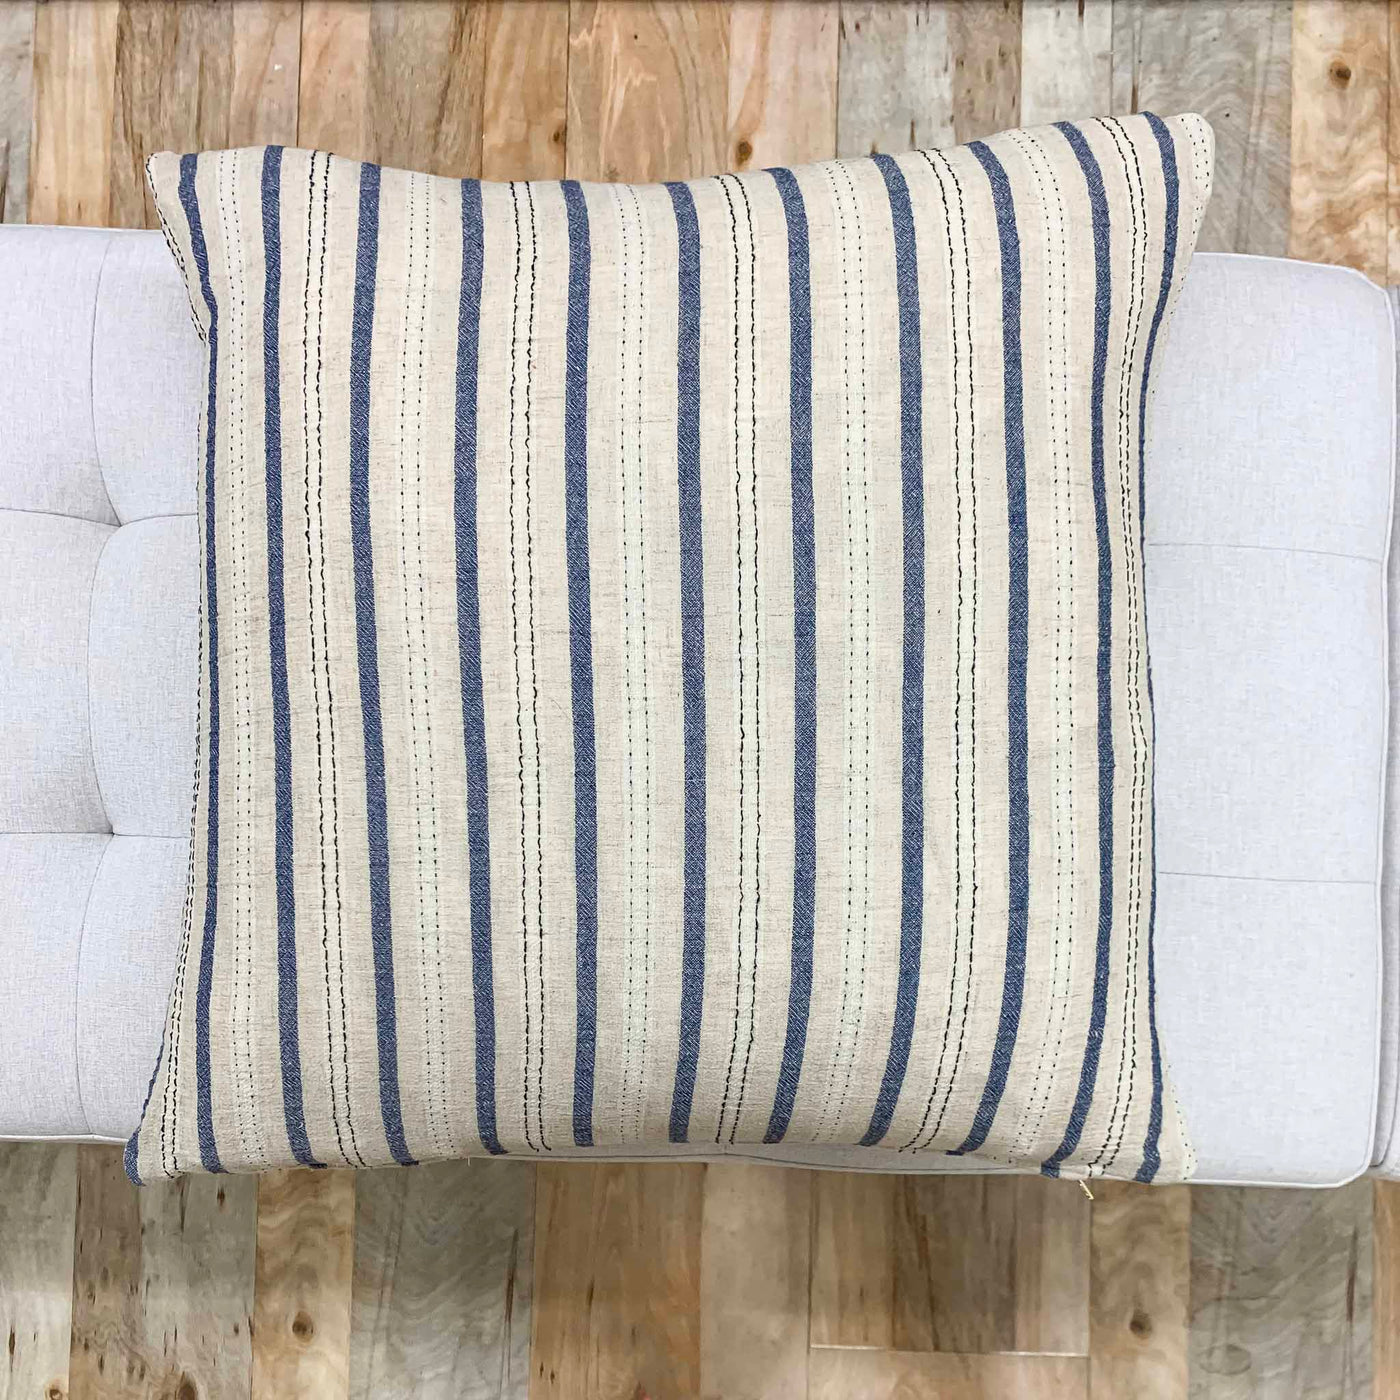 Vintage Blue & Tan Striped Pillow - Stewart - Studio Pillows